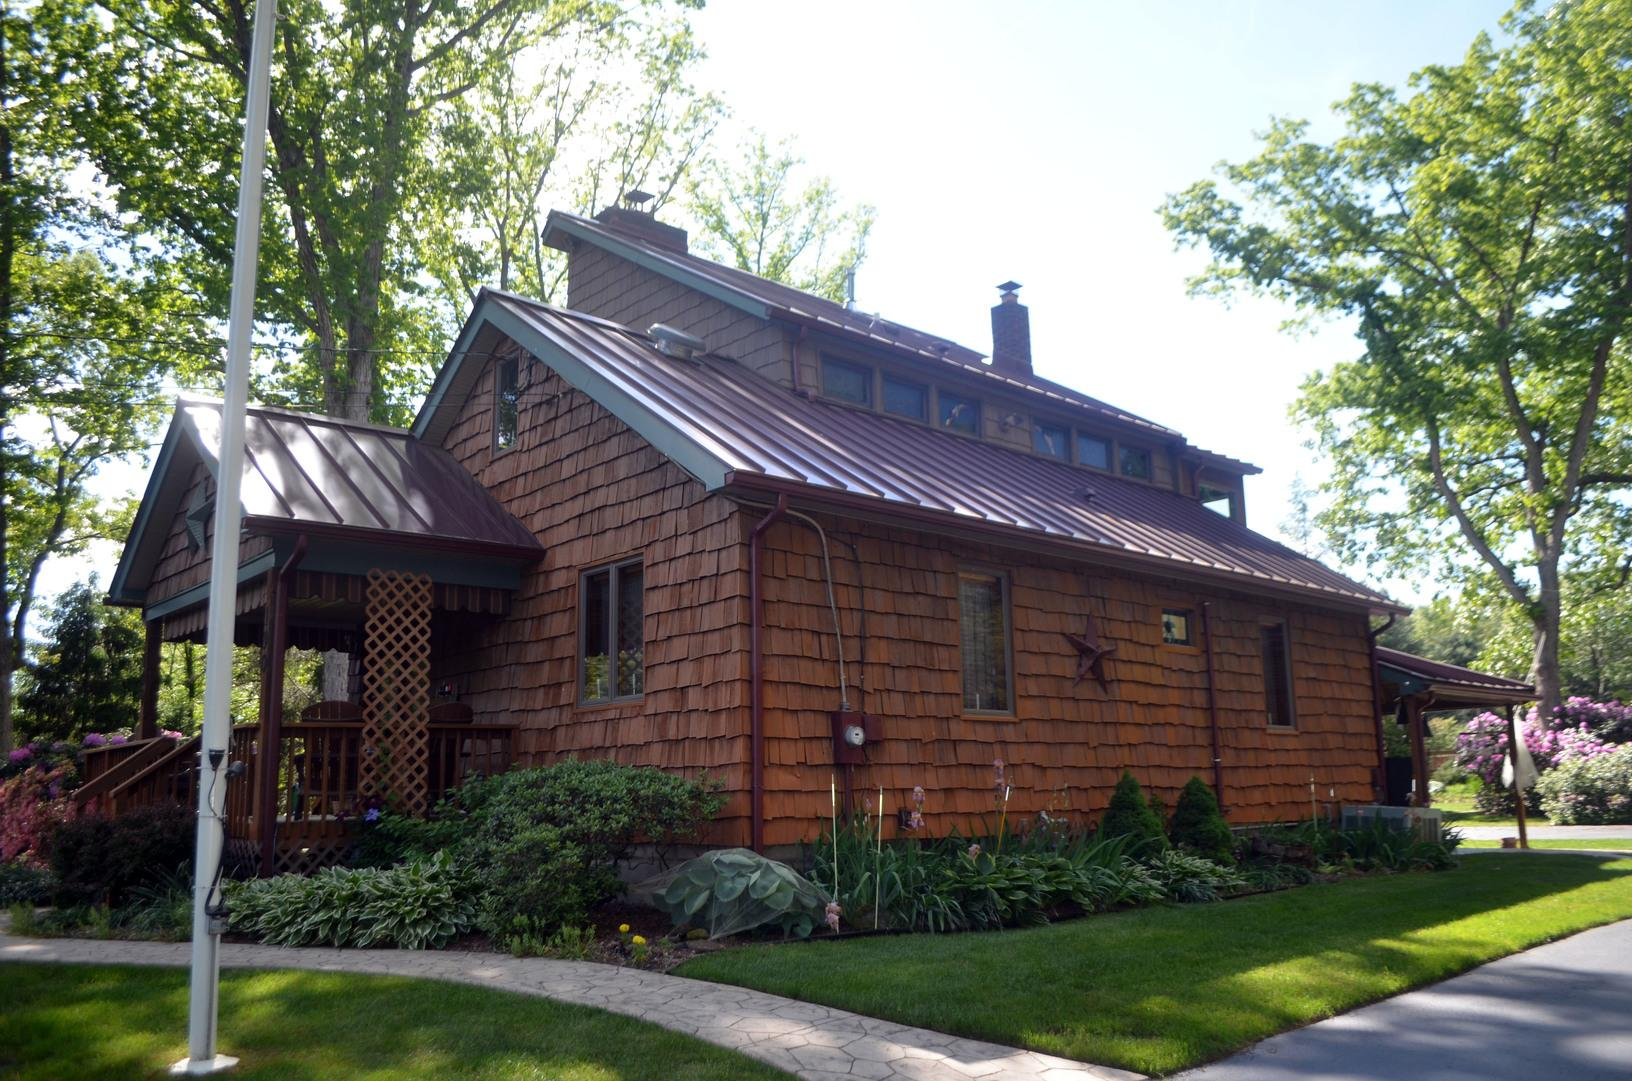 Pairing Burgundy Metal Roof with Wood Siding